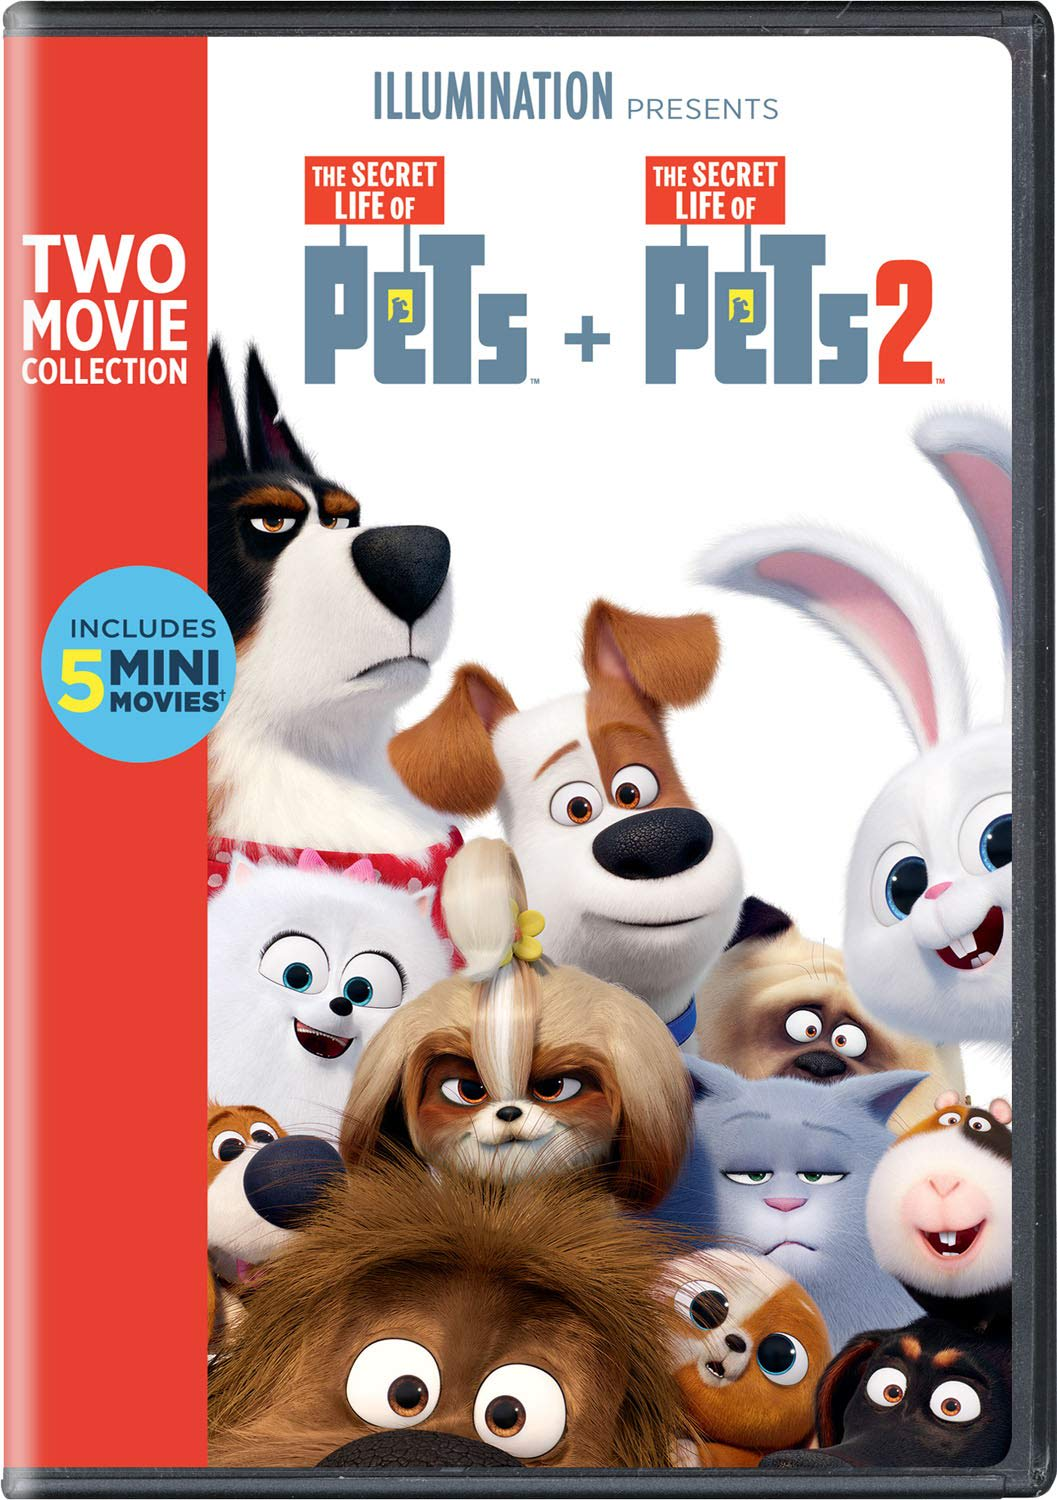 The Secret Life of Pets 1 & 2 [DVD]